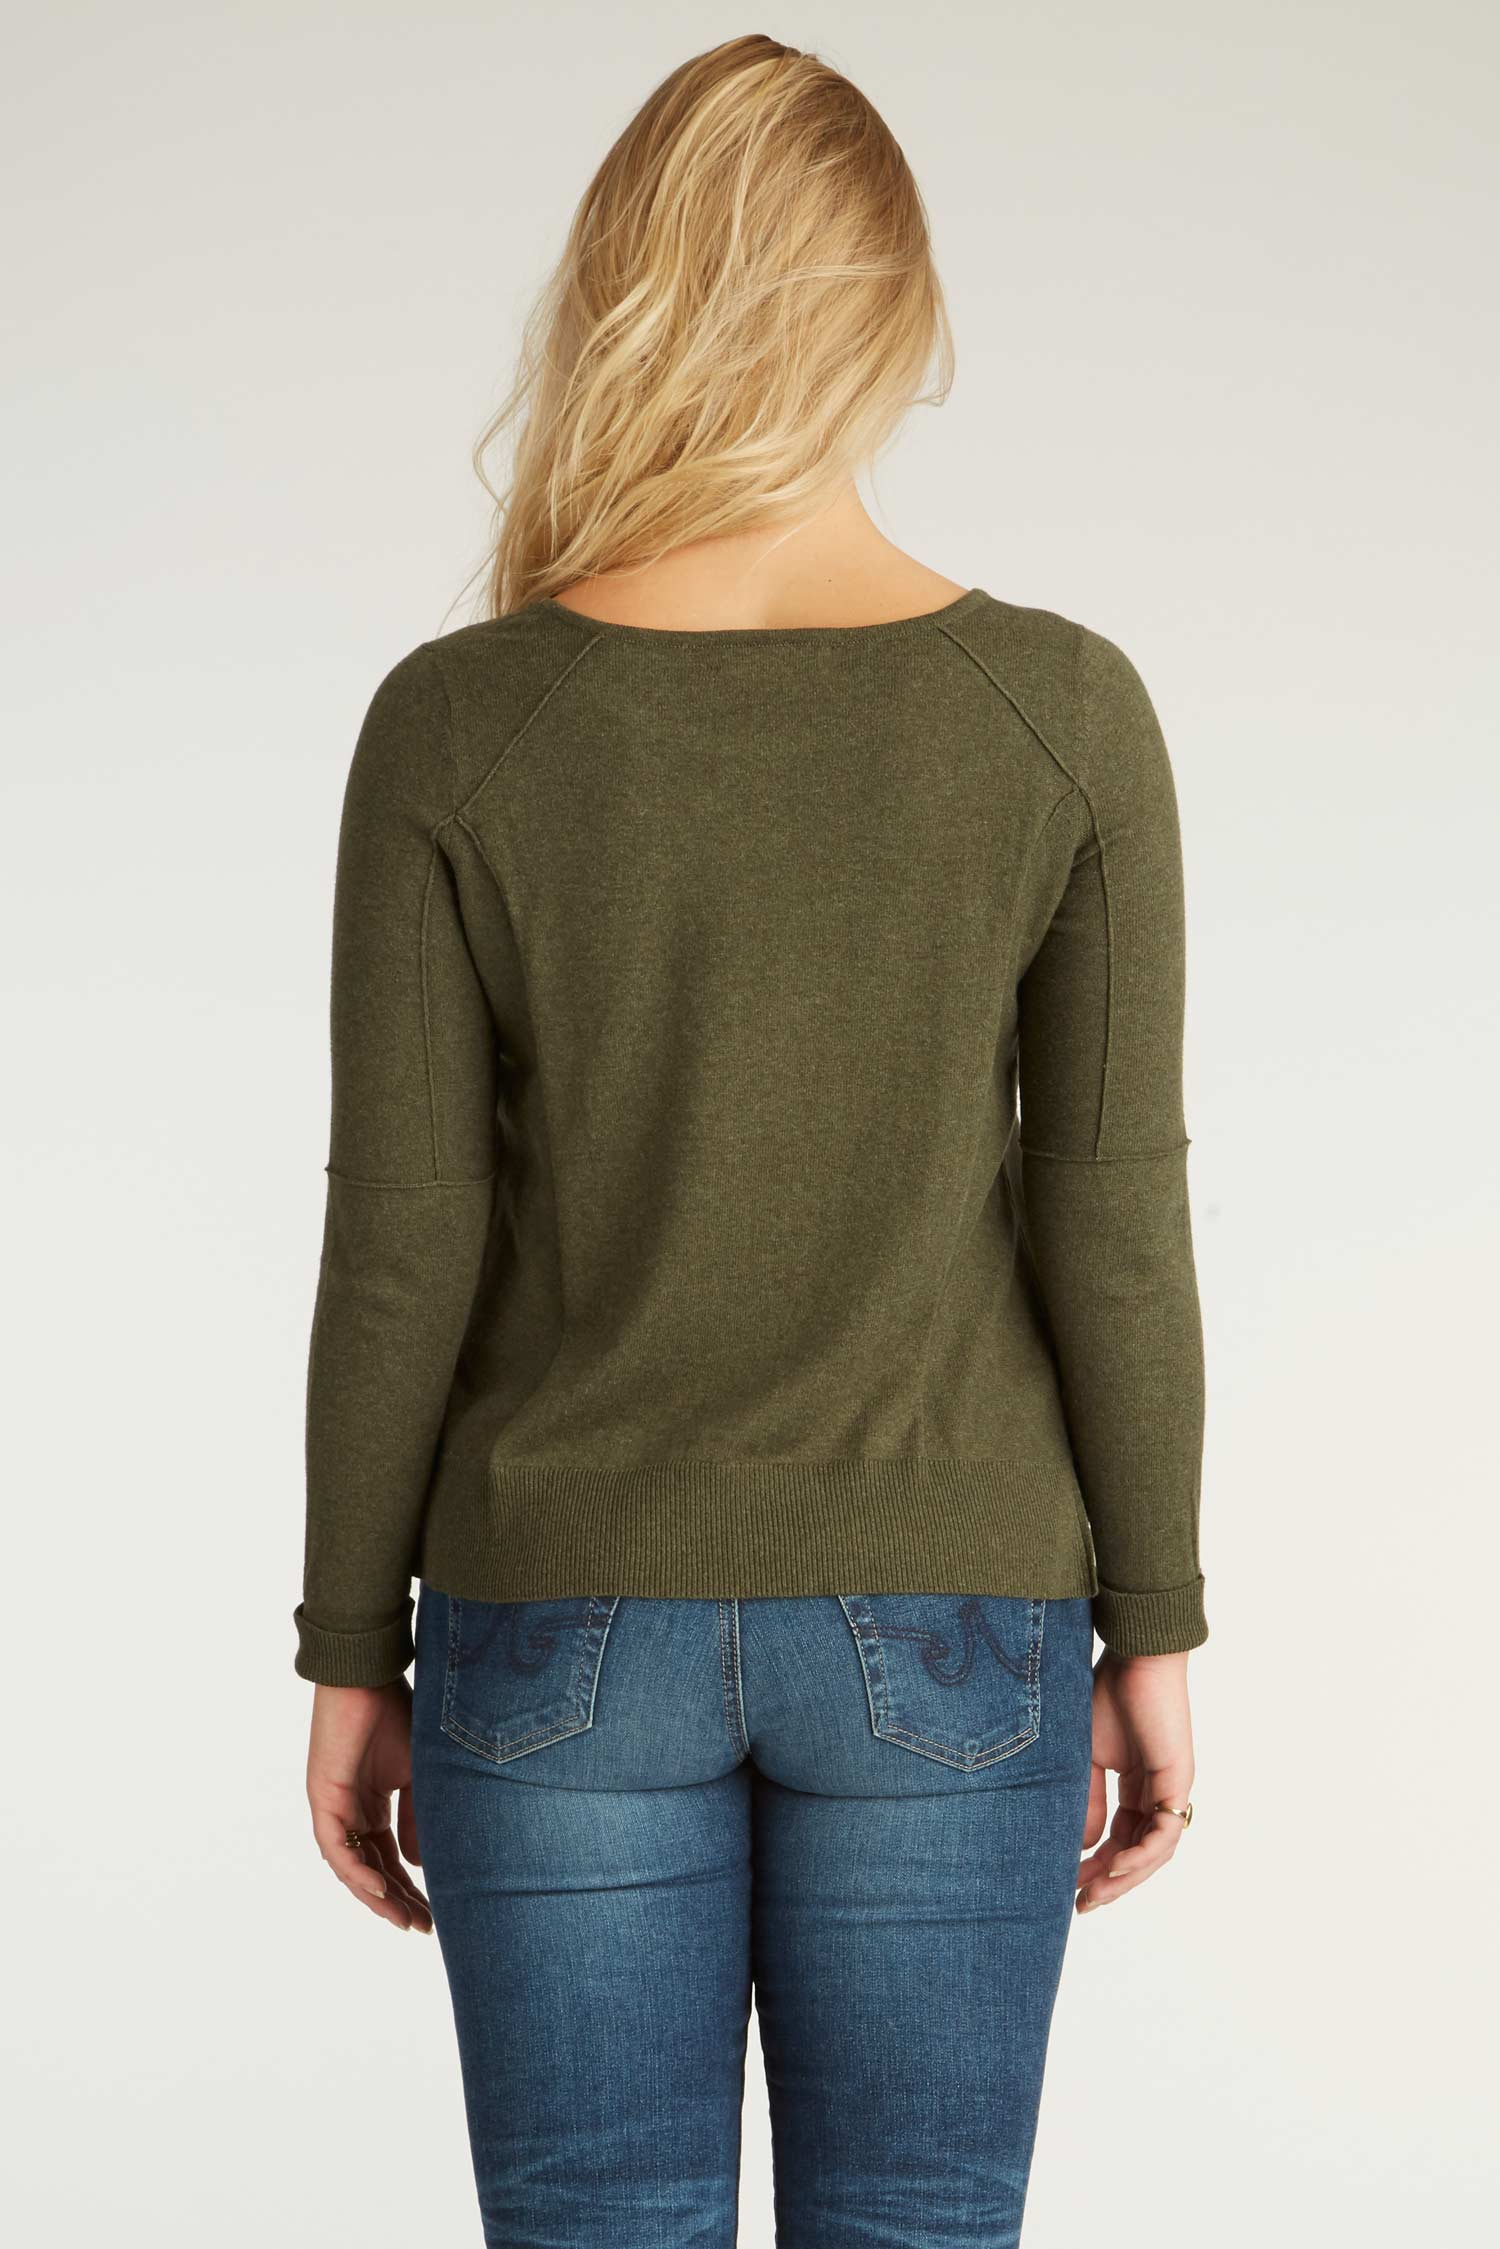 Womens Organic Cotton Sweater - Cropped Knit Pullover - Moss Green - Indigenous